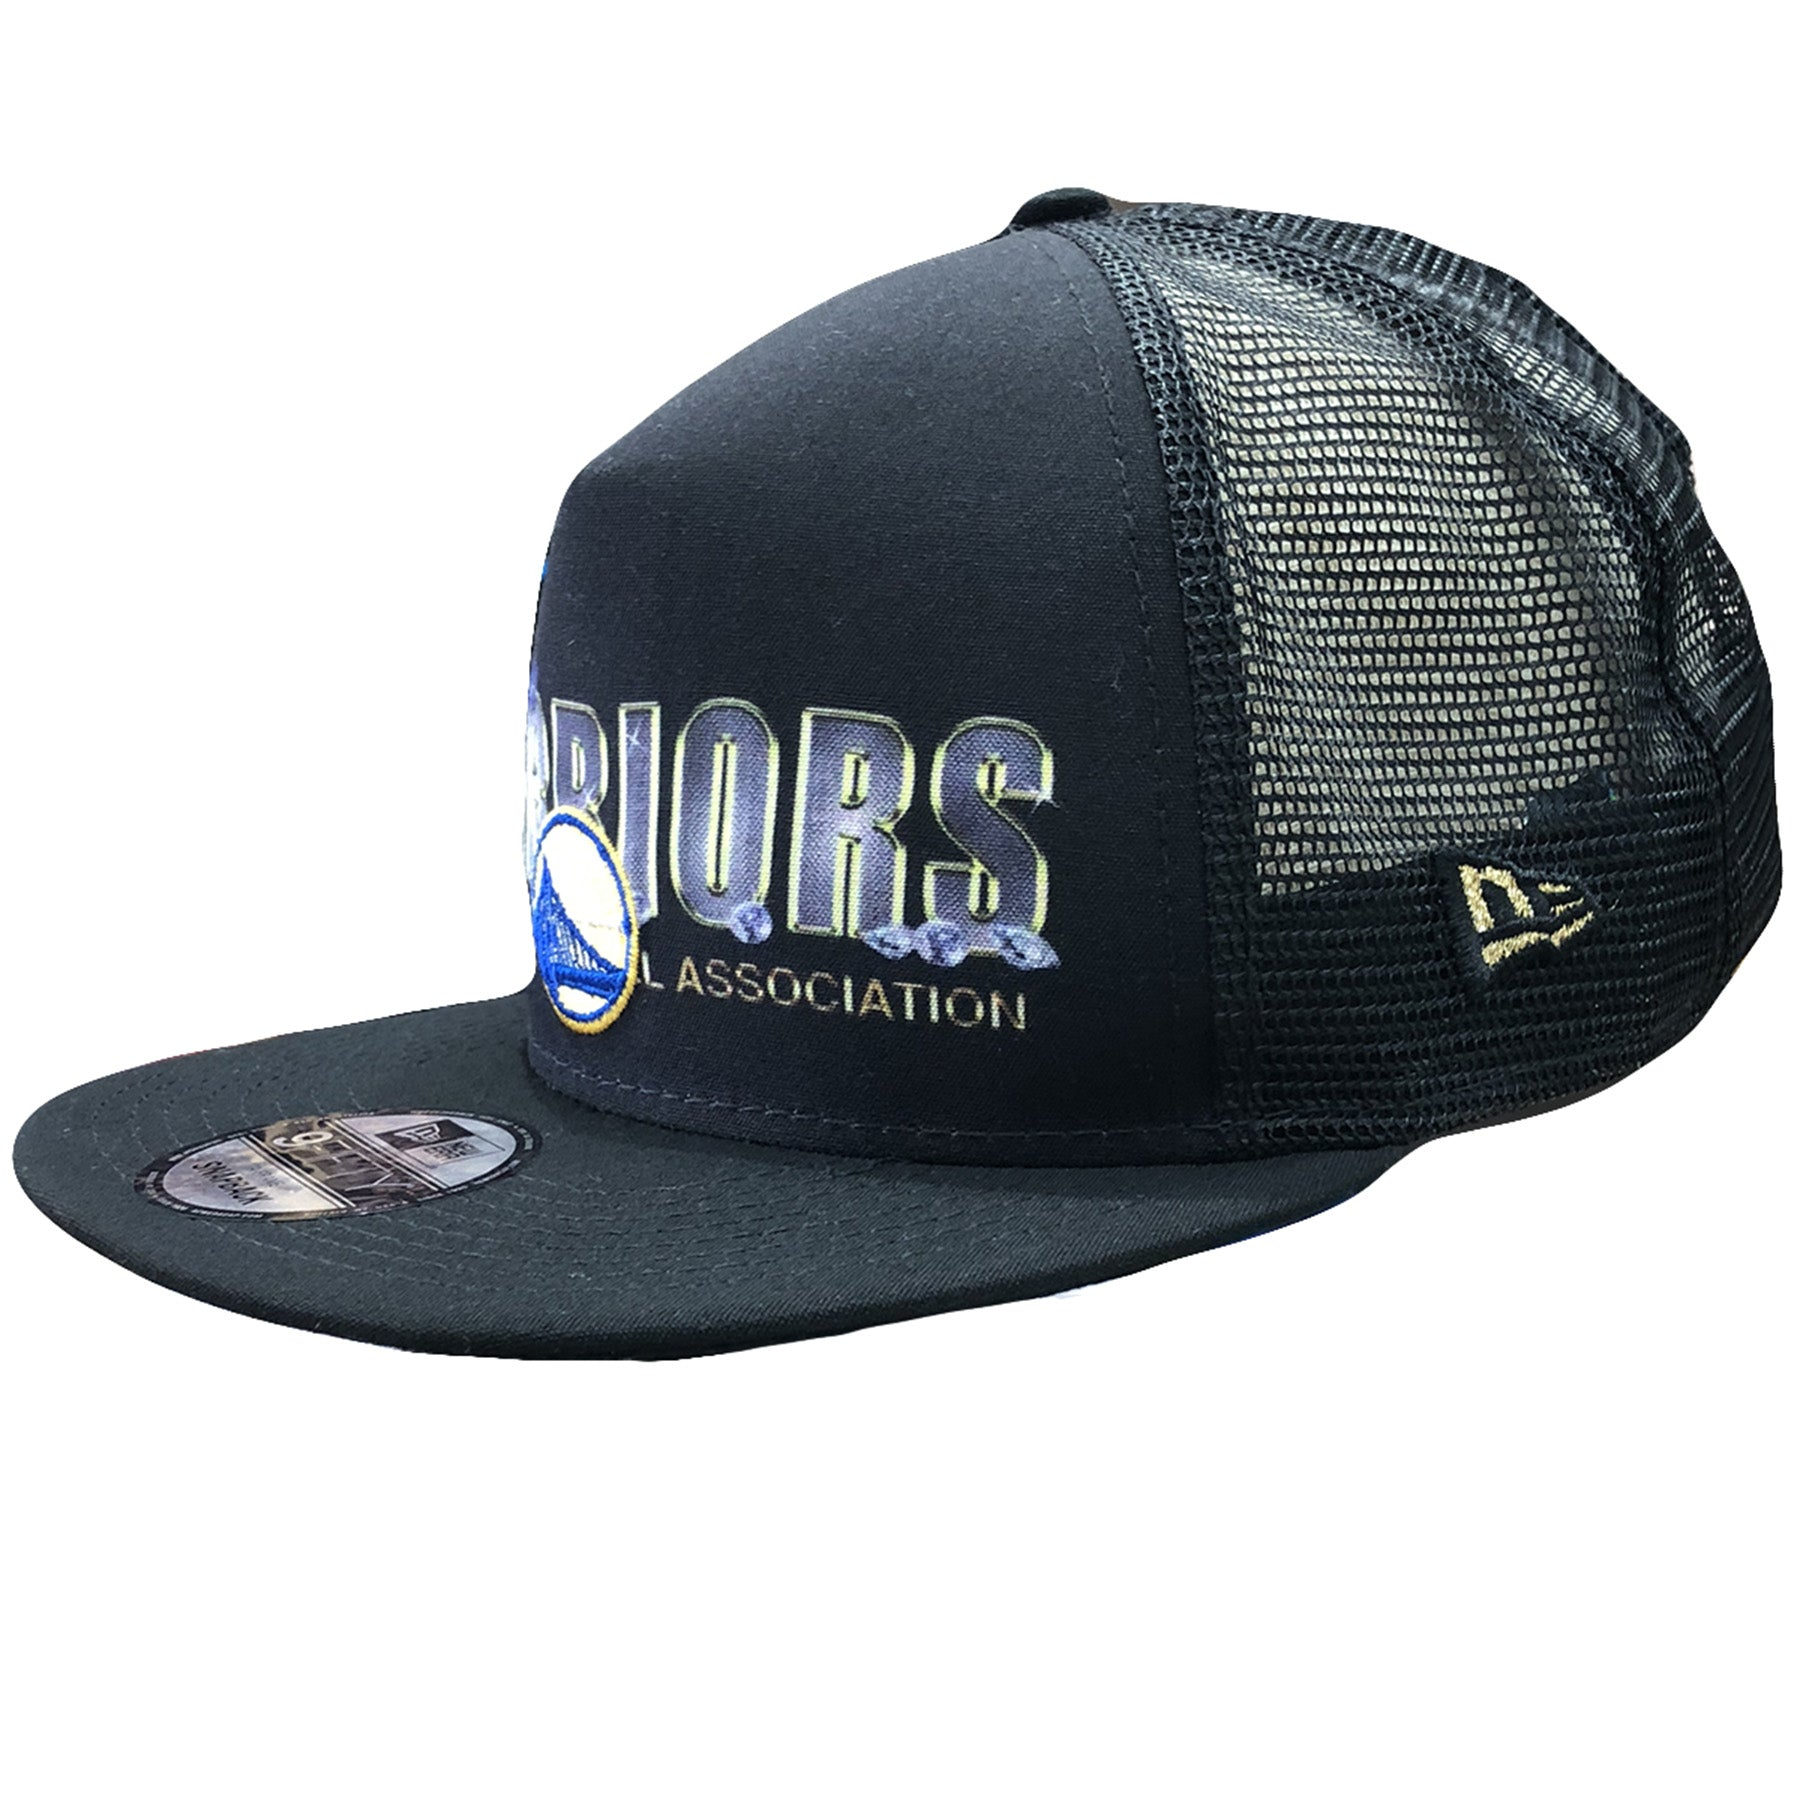 342c168853f ... Embroidered on the left side of the Golden State Warriors trucker snapback  hat is the New ...